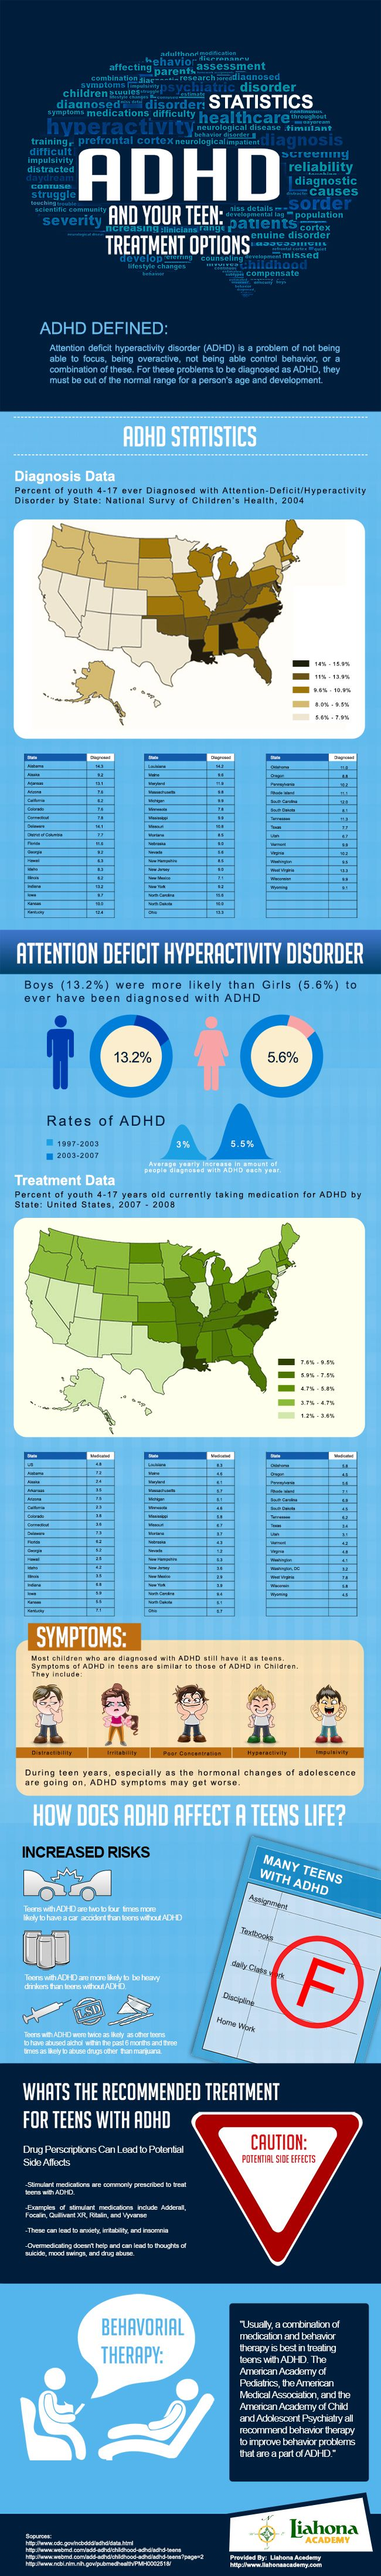 ADHD symptoms and treatment options Find out more in this infougraphic